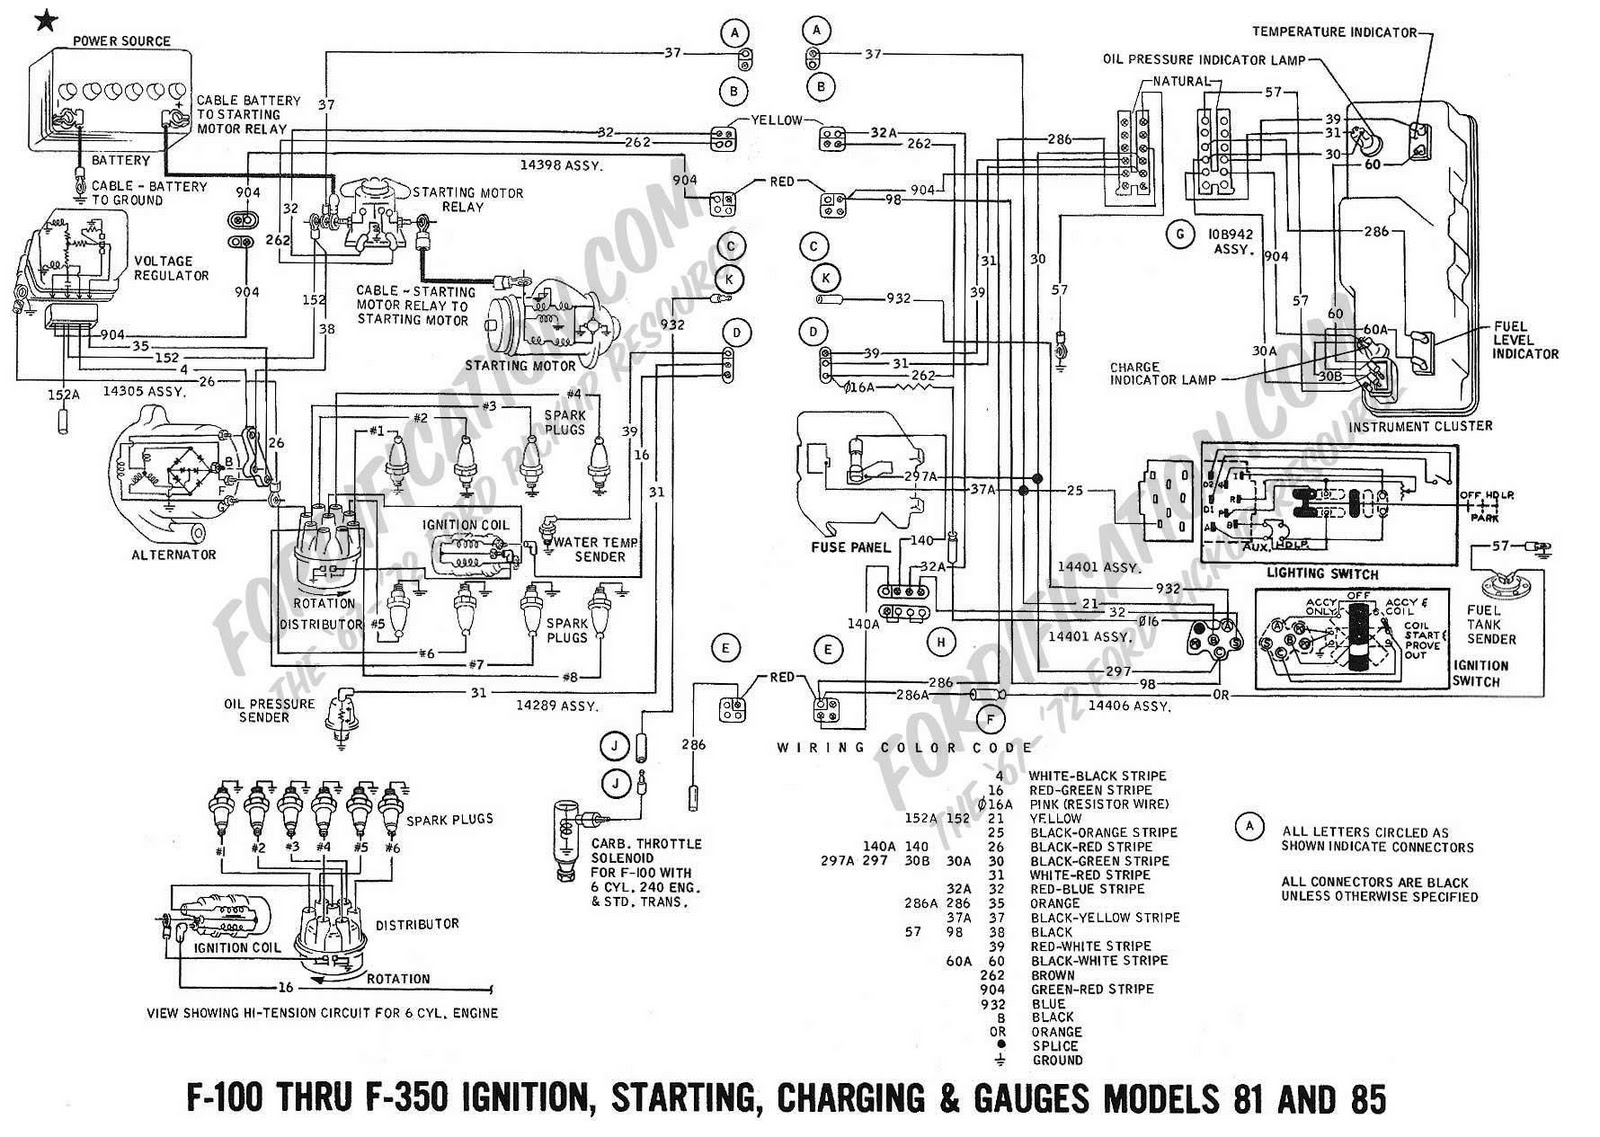 1977 ford ltd wiring diagram wiring diagram schematics ford pinto engine swap 78 ford pinto wiring [ 1600 x 1137 Pixel ]